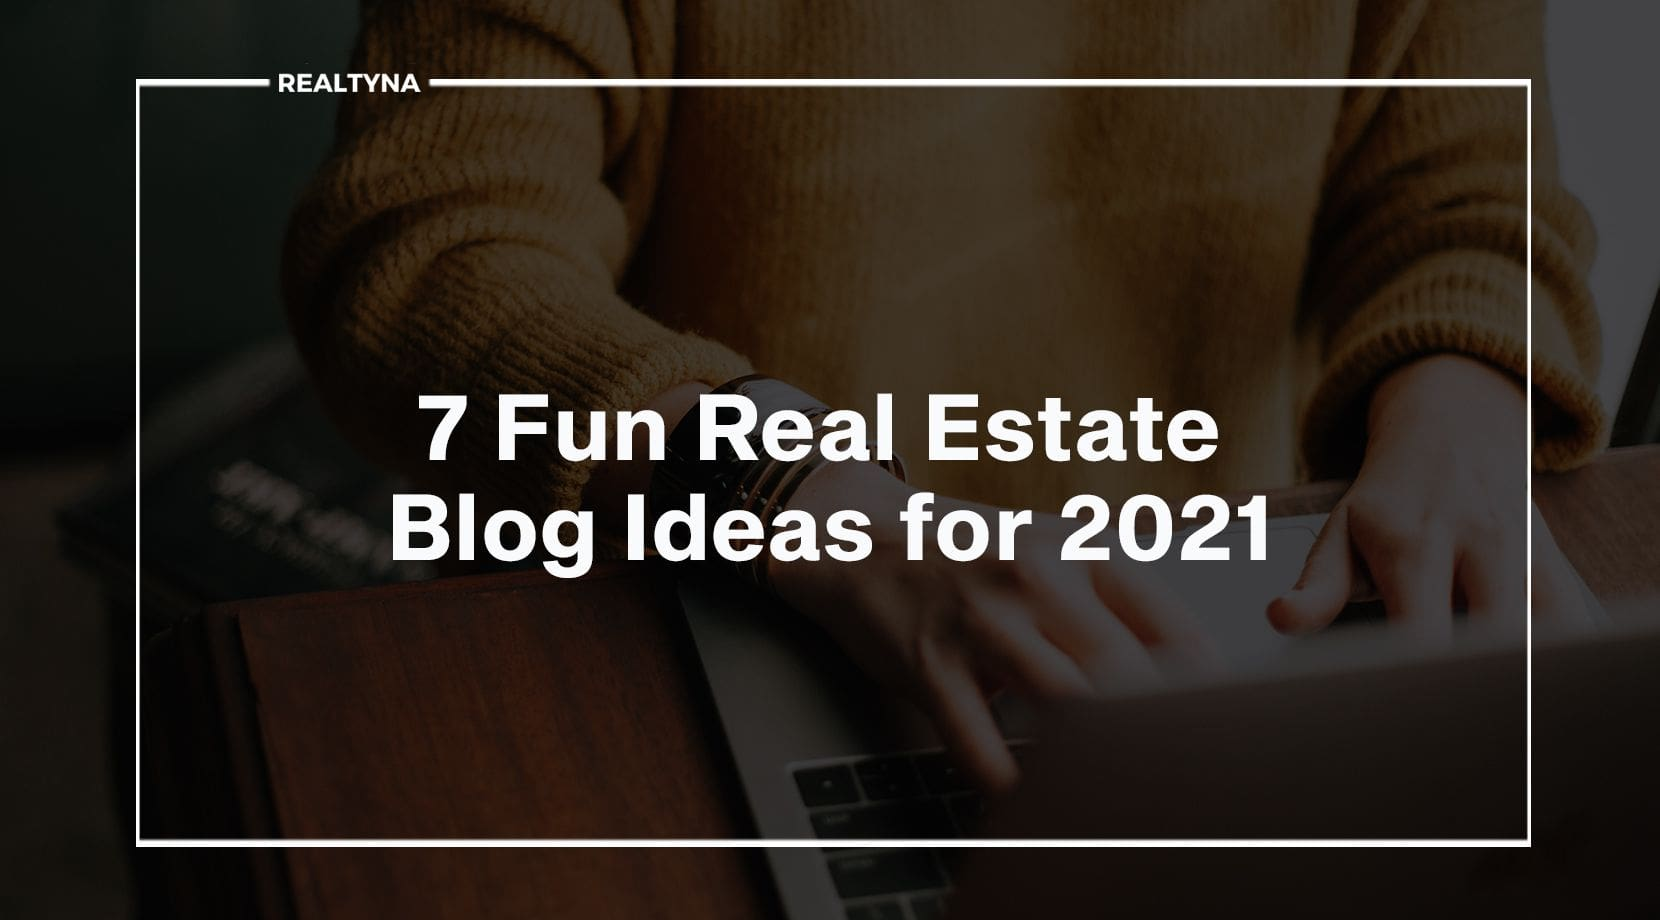 7 Fun Real Estate Blog Ideas for 2021